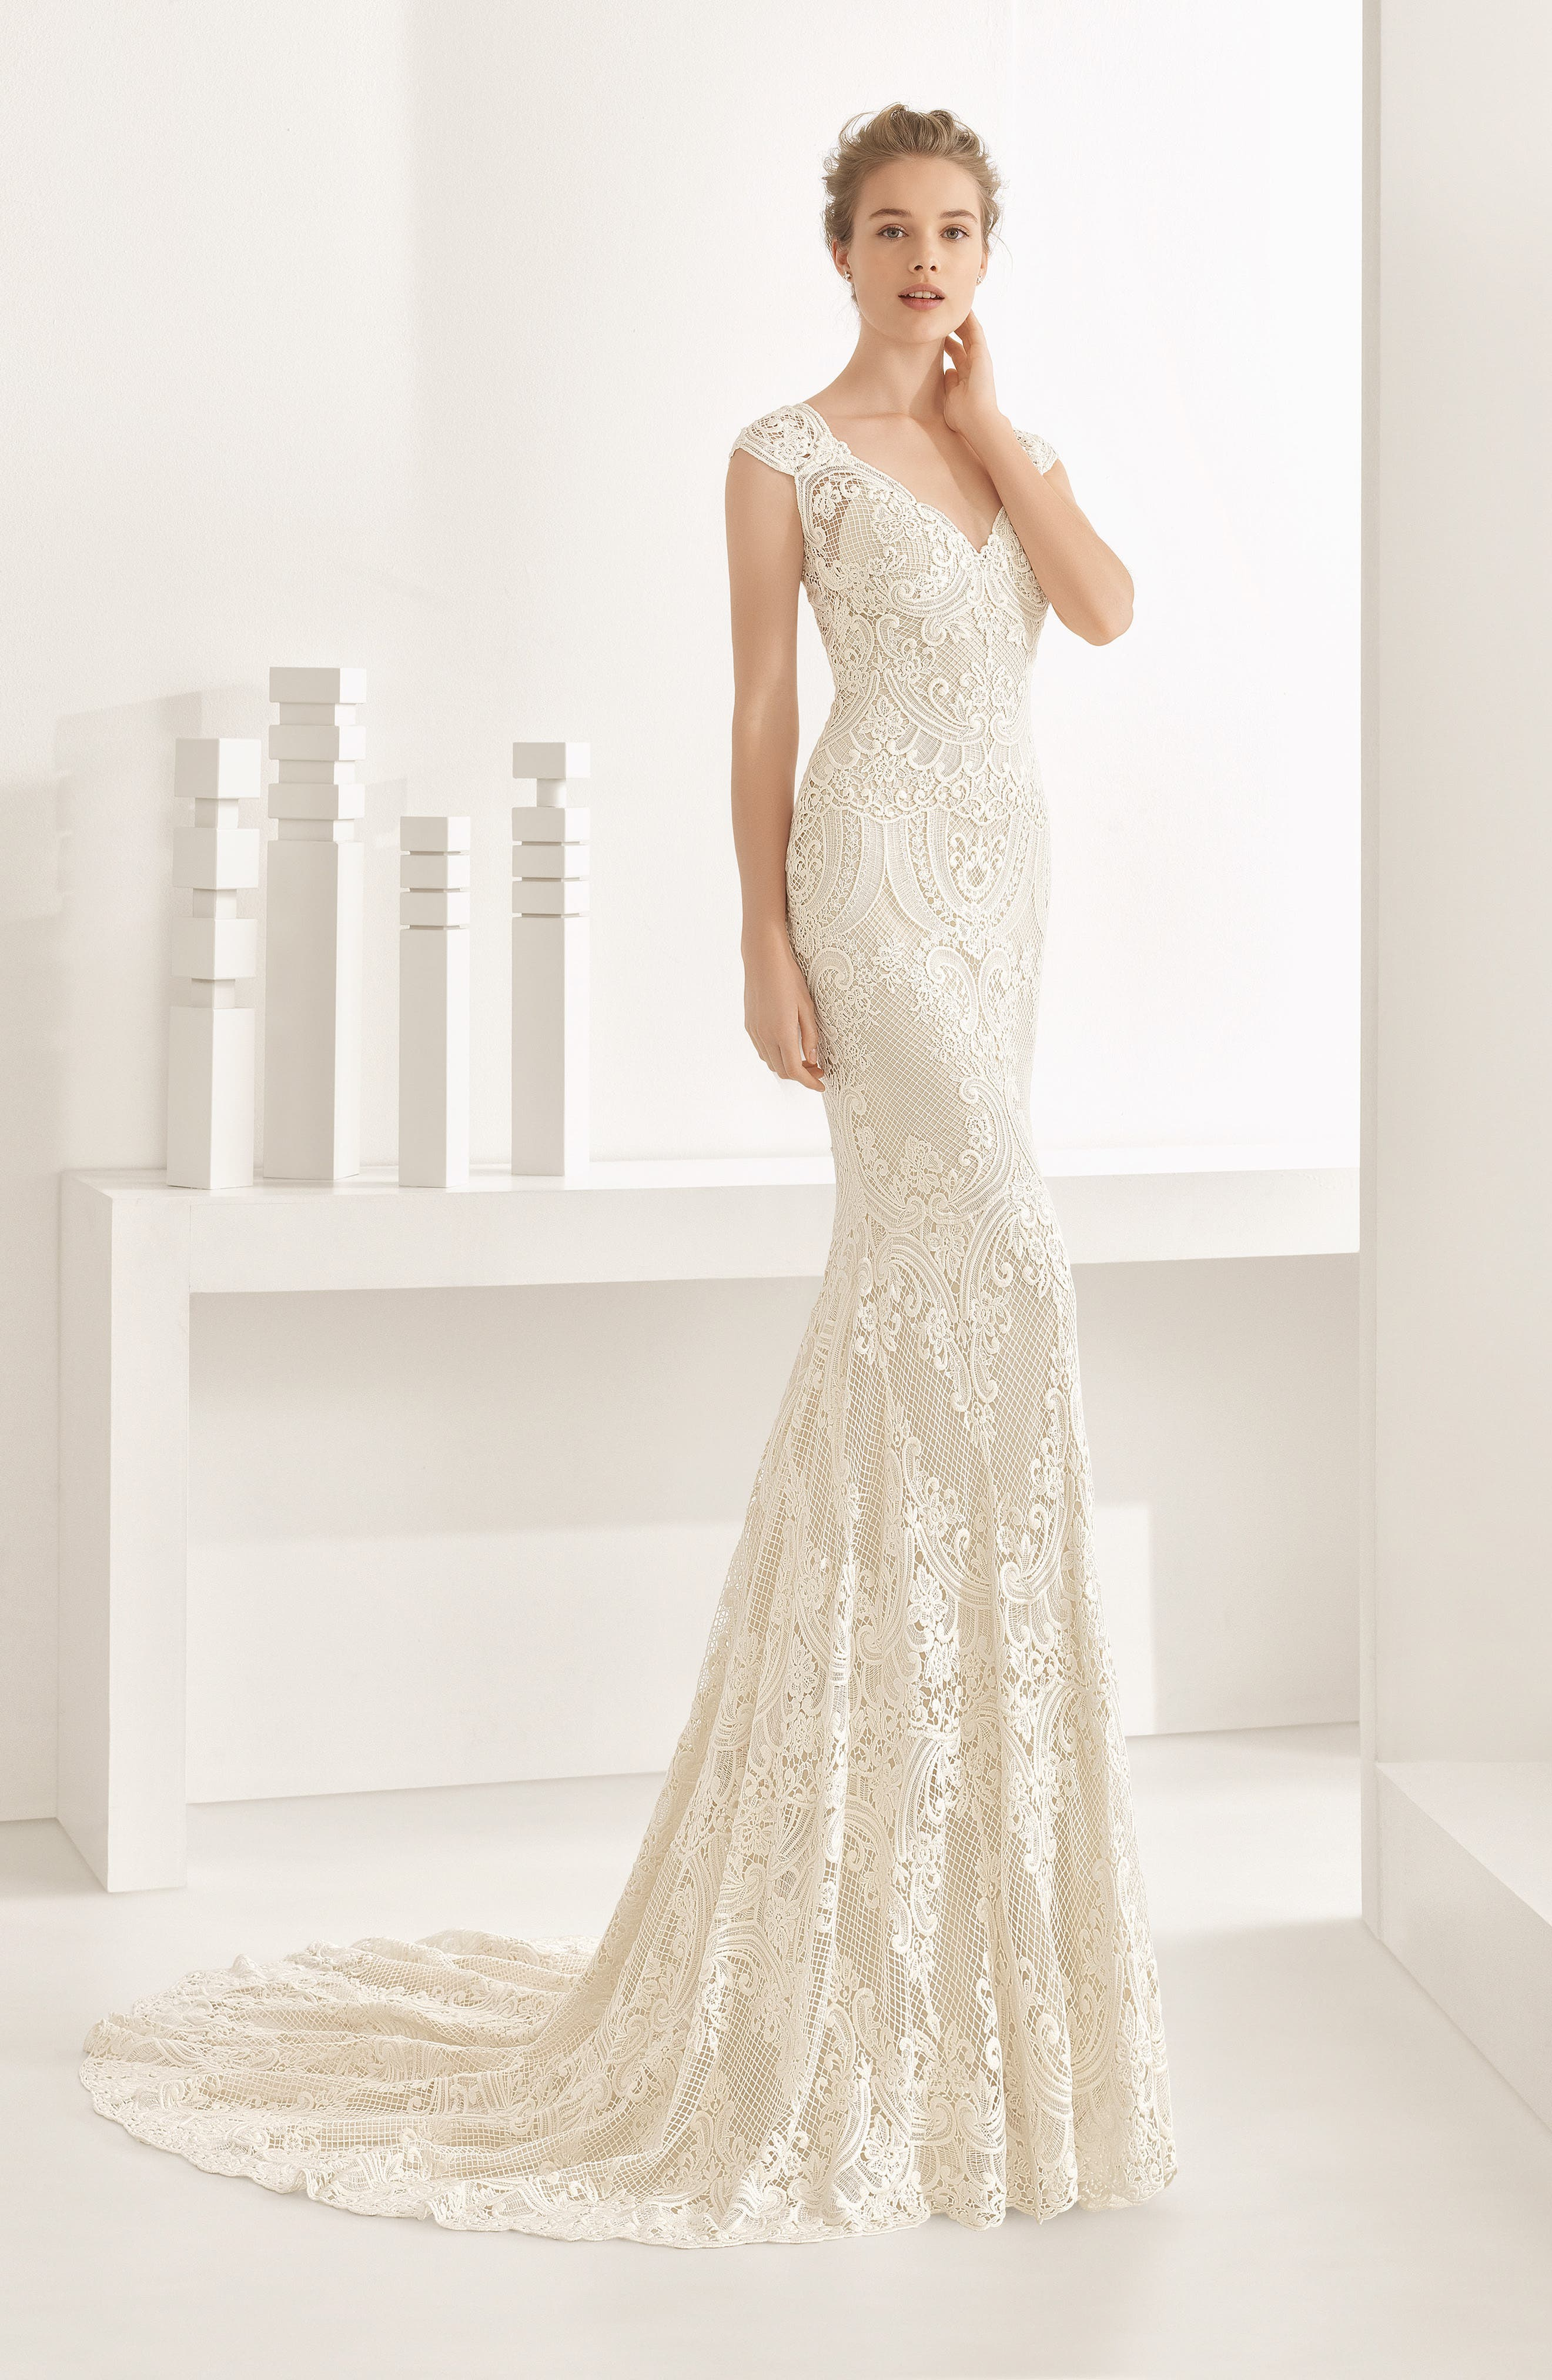 Natalia Guipure Lace Mermaid Gown,                             Alternate thumbnail 4, color,                             900